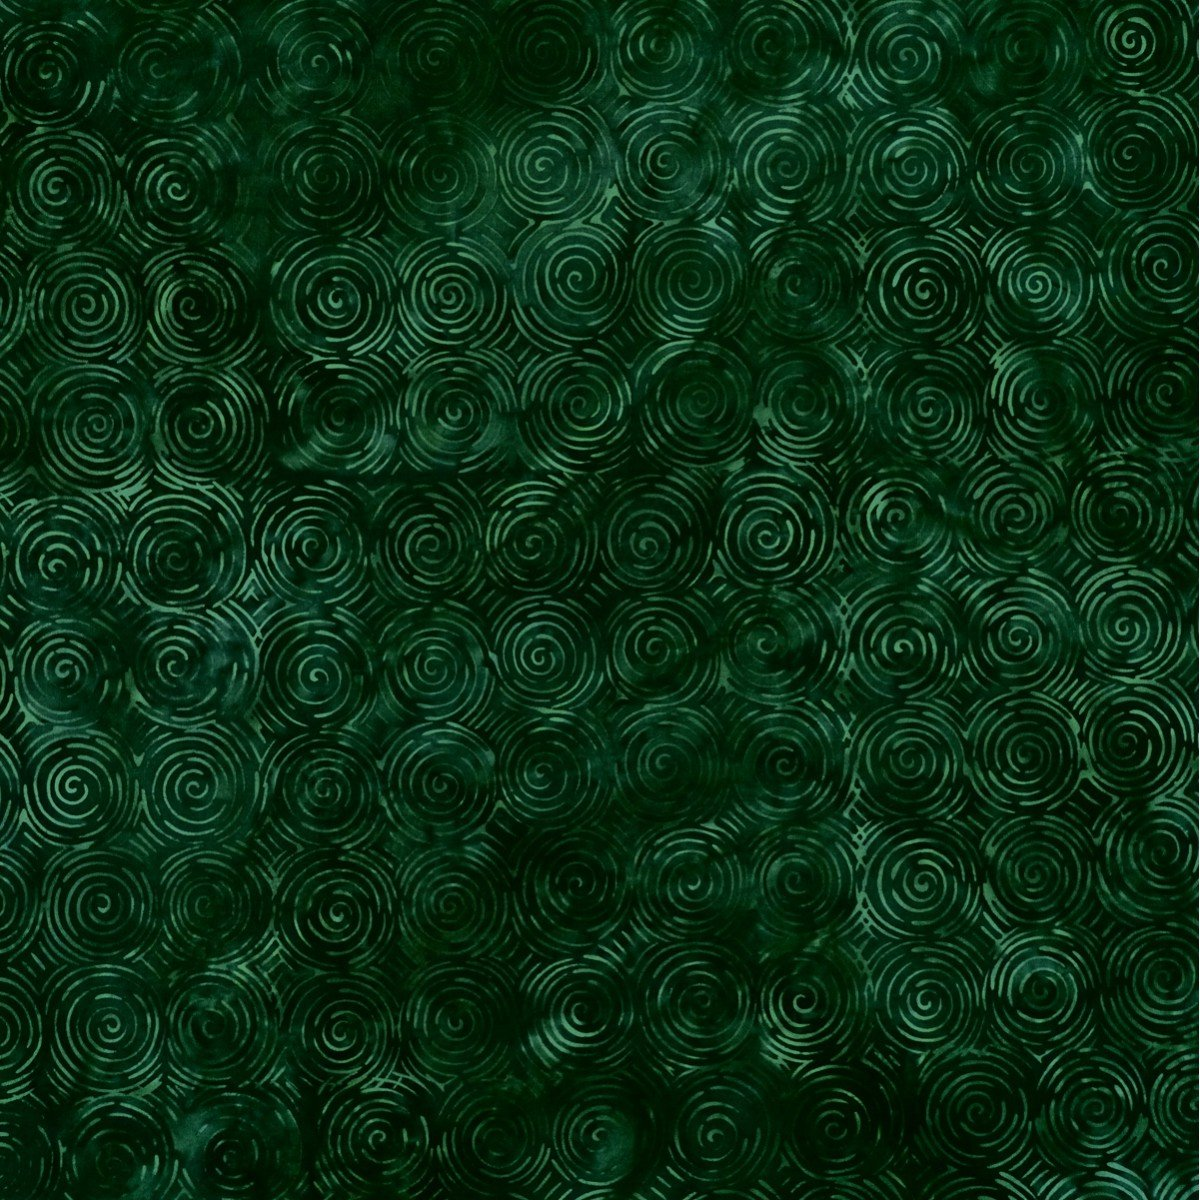 Batik by Mirah - Twilight Flight Dk Green